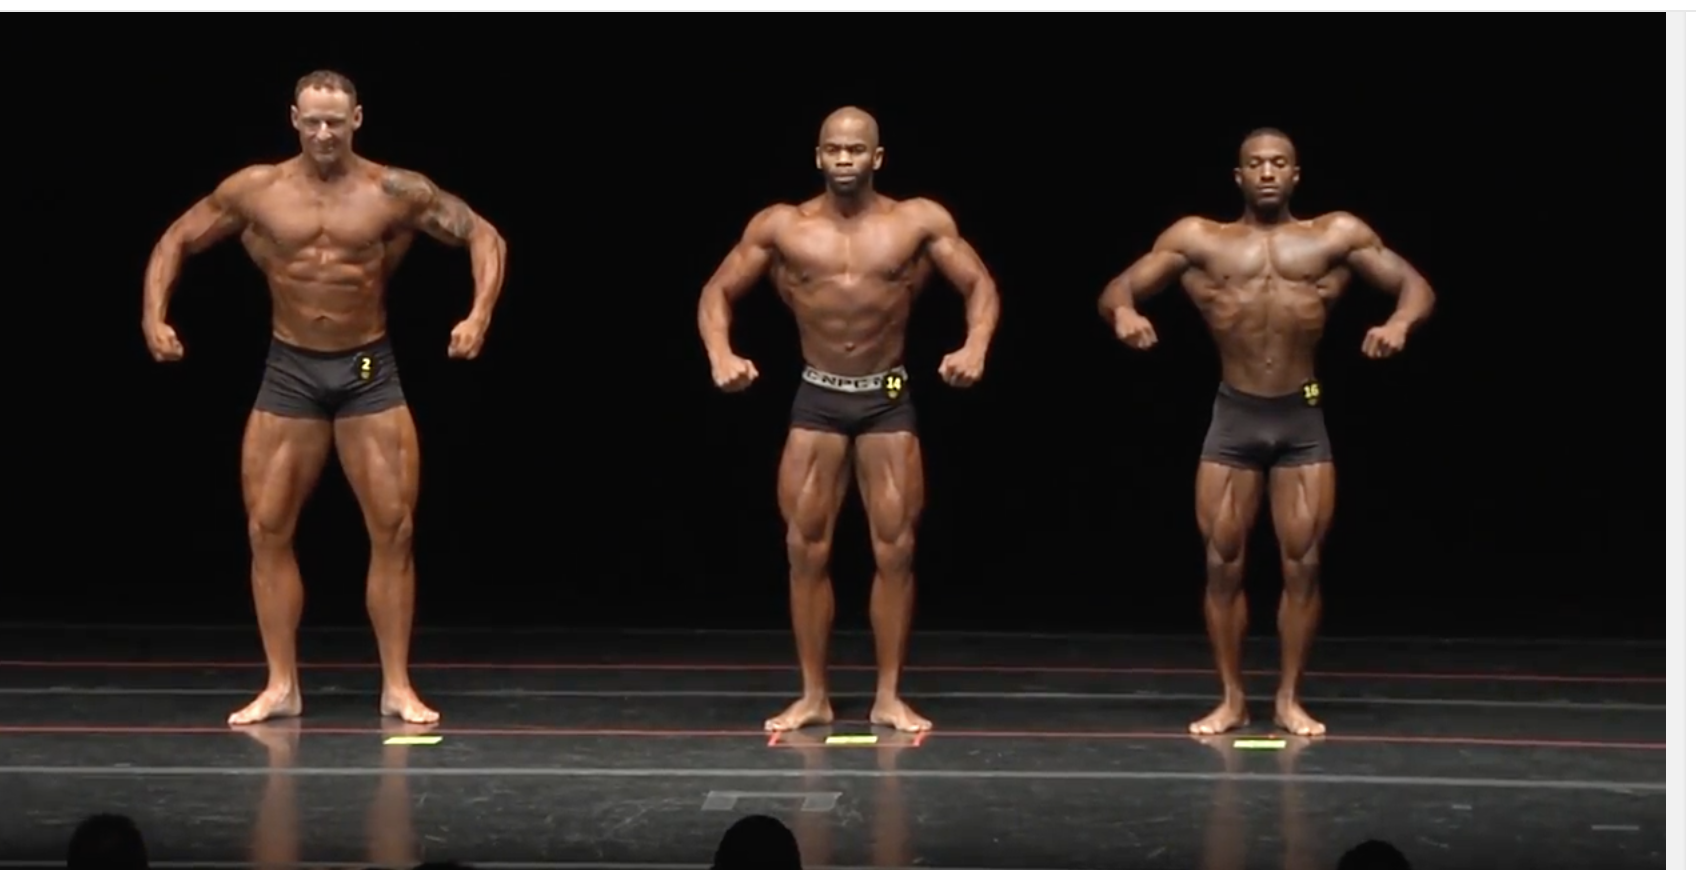 2017 NPC Tennessee State Men's Classic Physique Overall Video